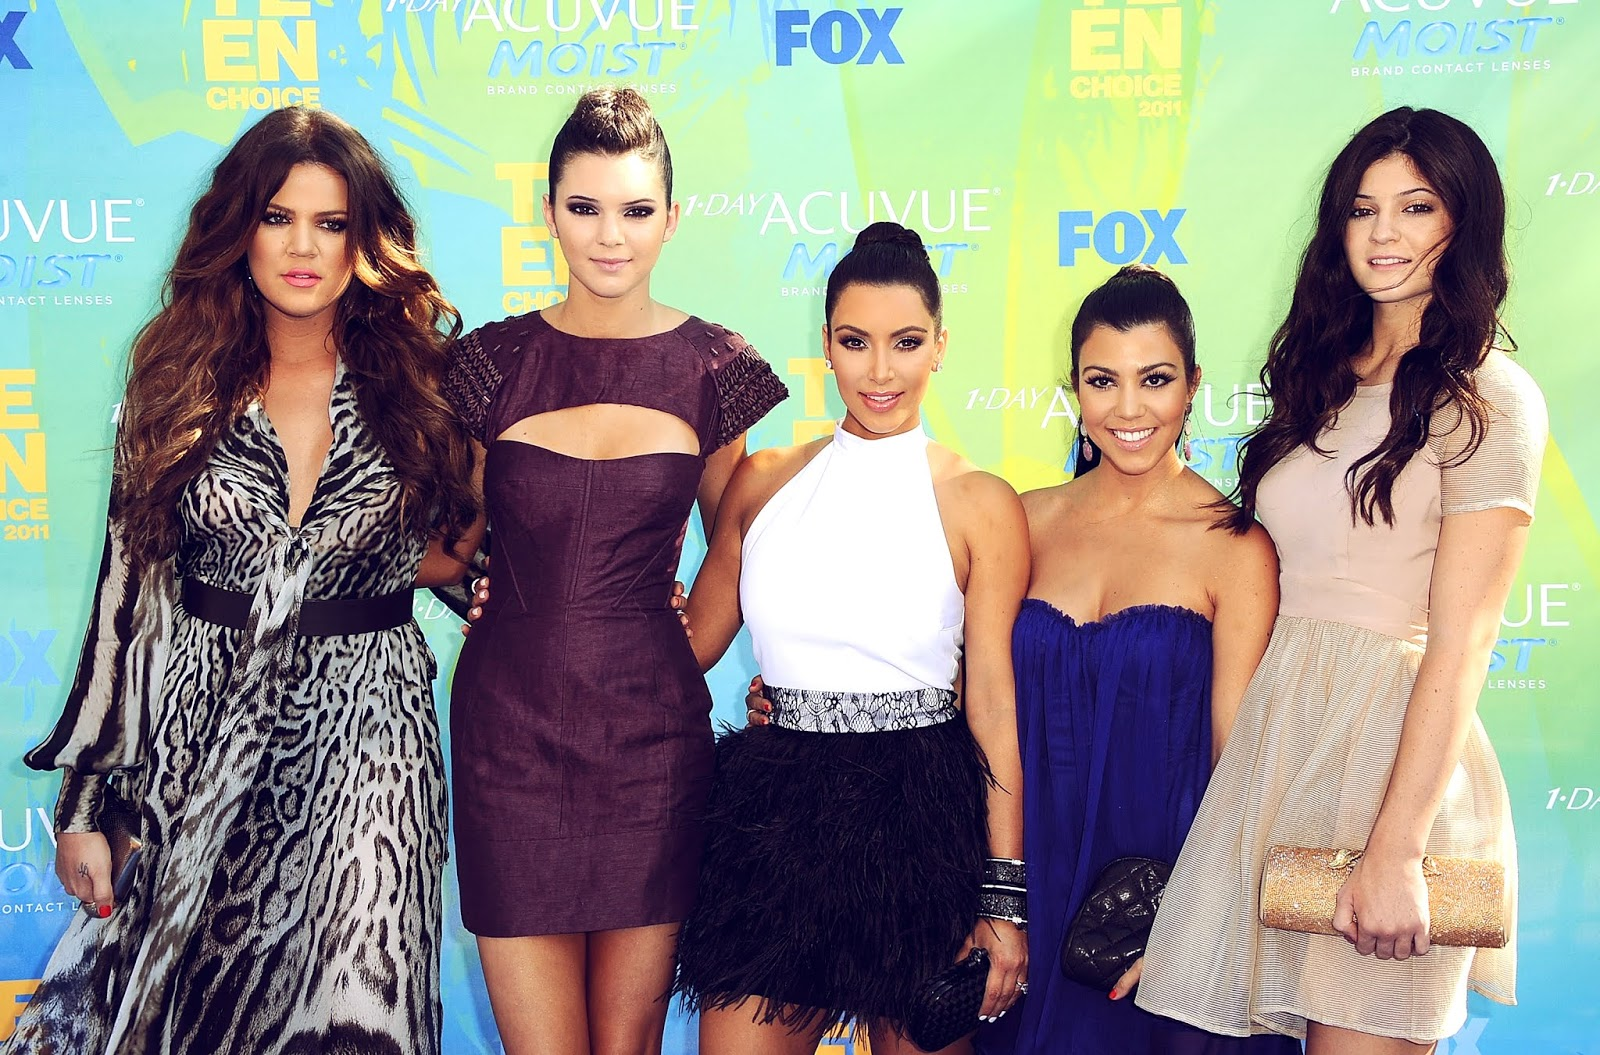 31 - Teen Choice Awards in August 11, 2011